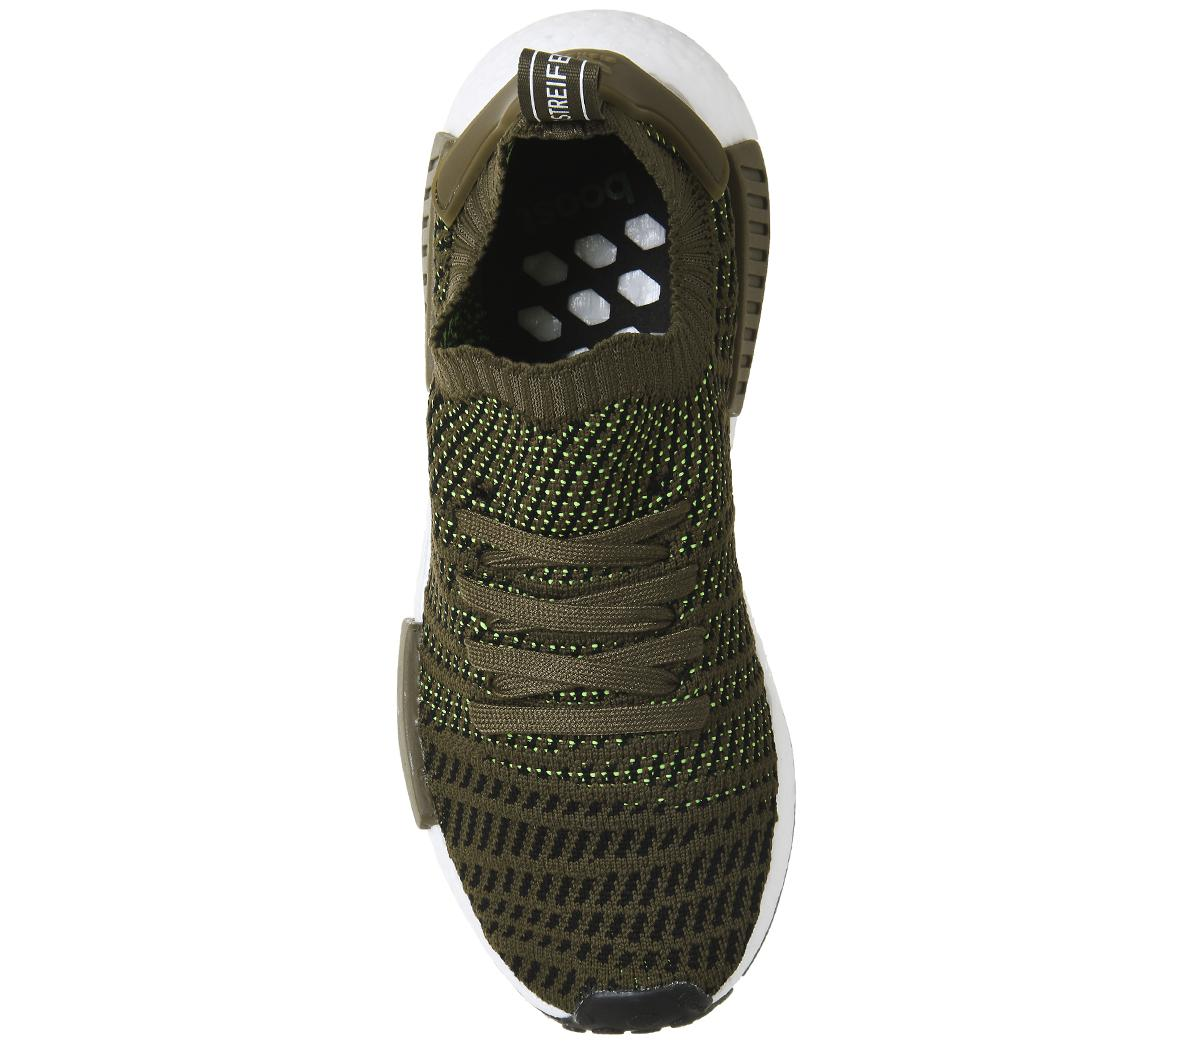 adidas Rubber Nmd R1 Prime Knit Trainers in Olive (Green) for Men